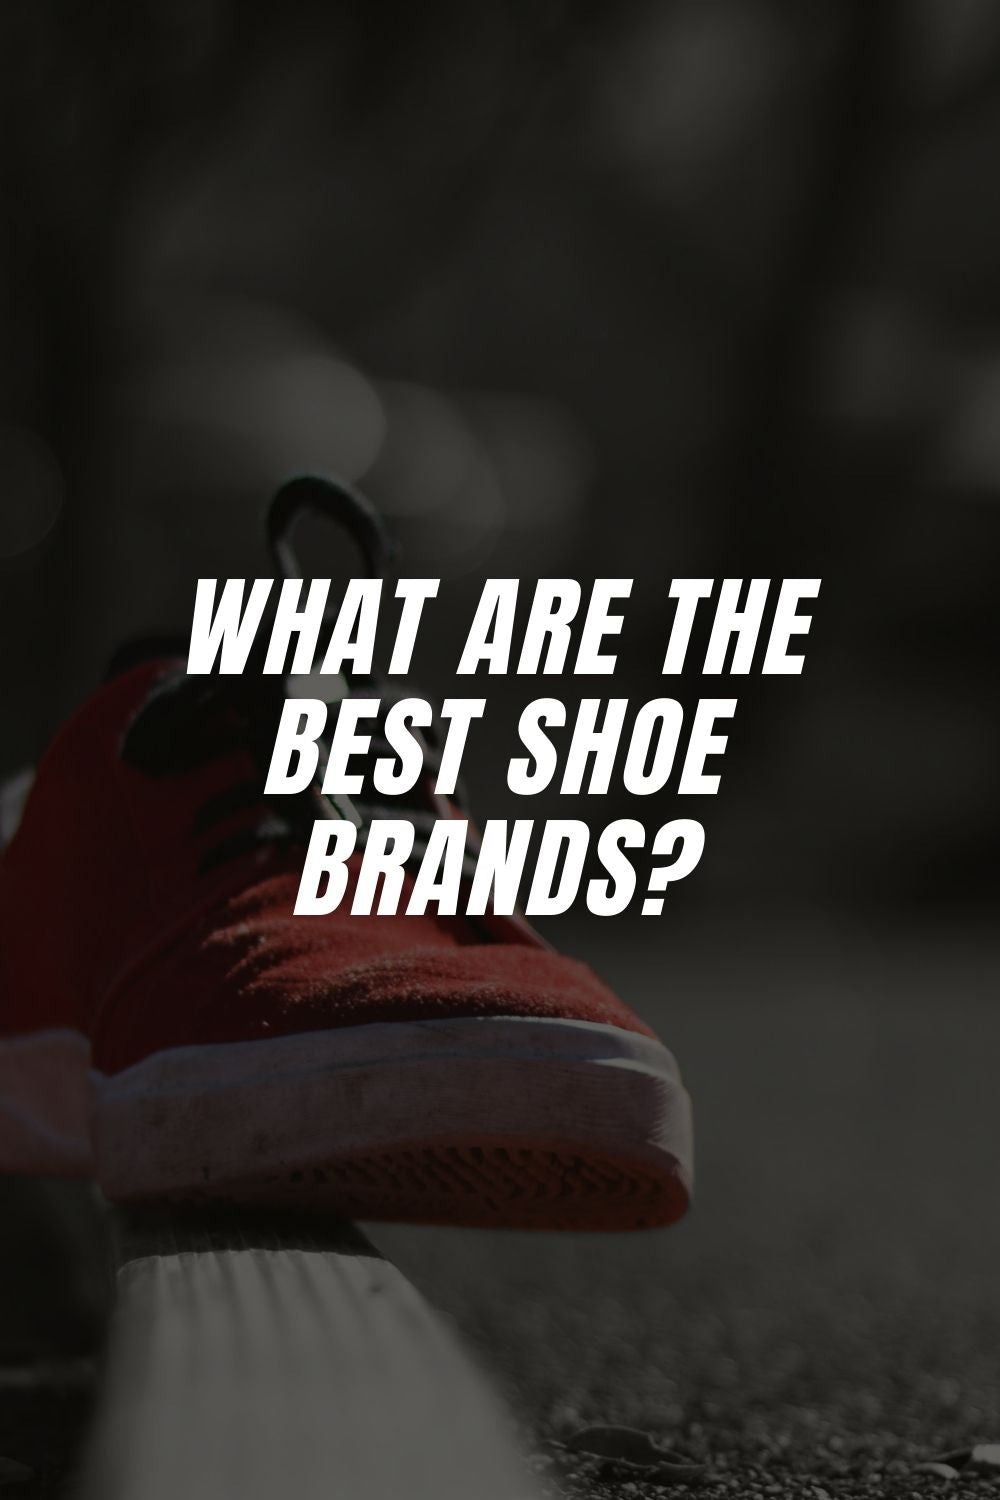 What Are the Best Shoe Brands?